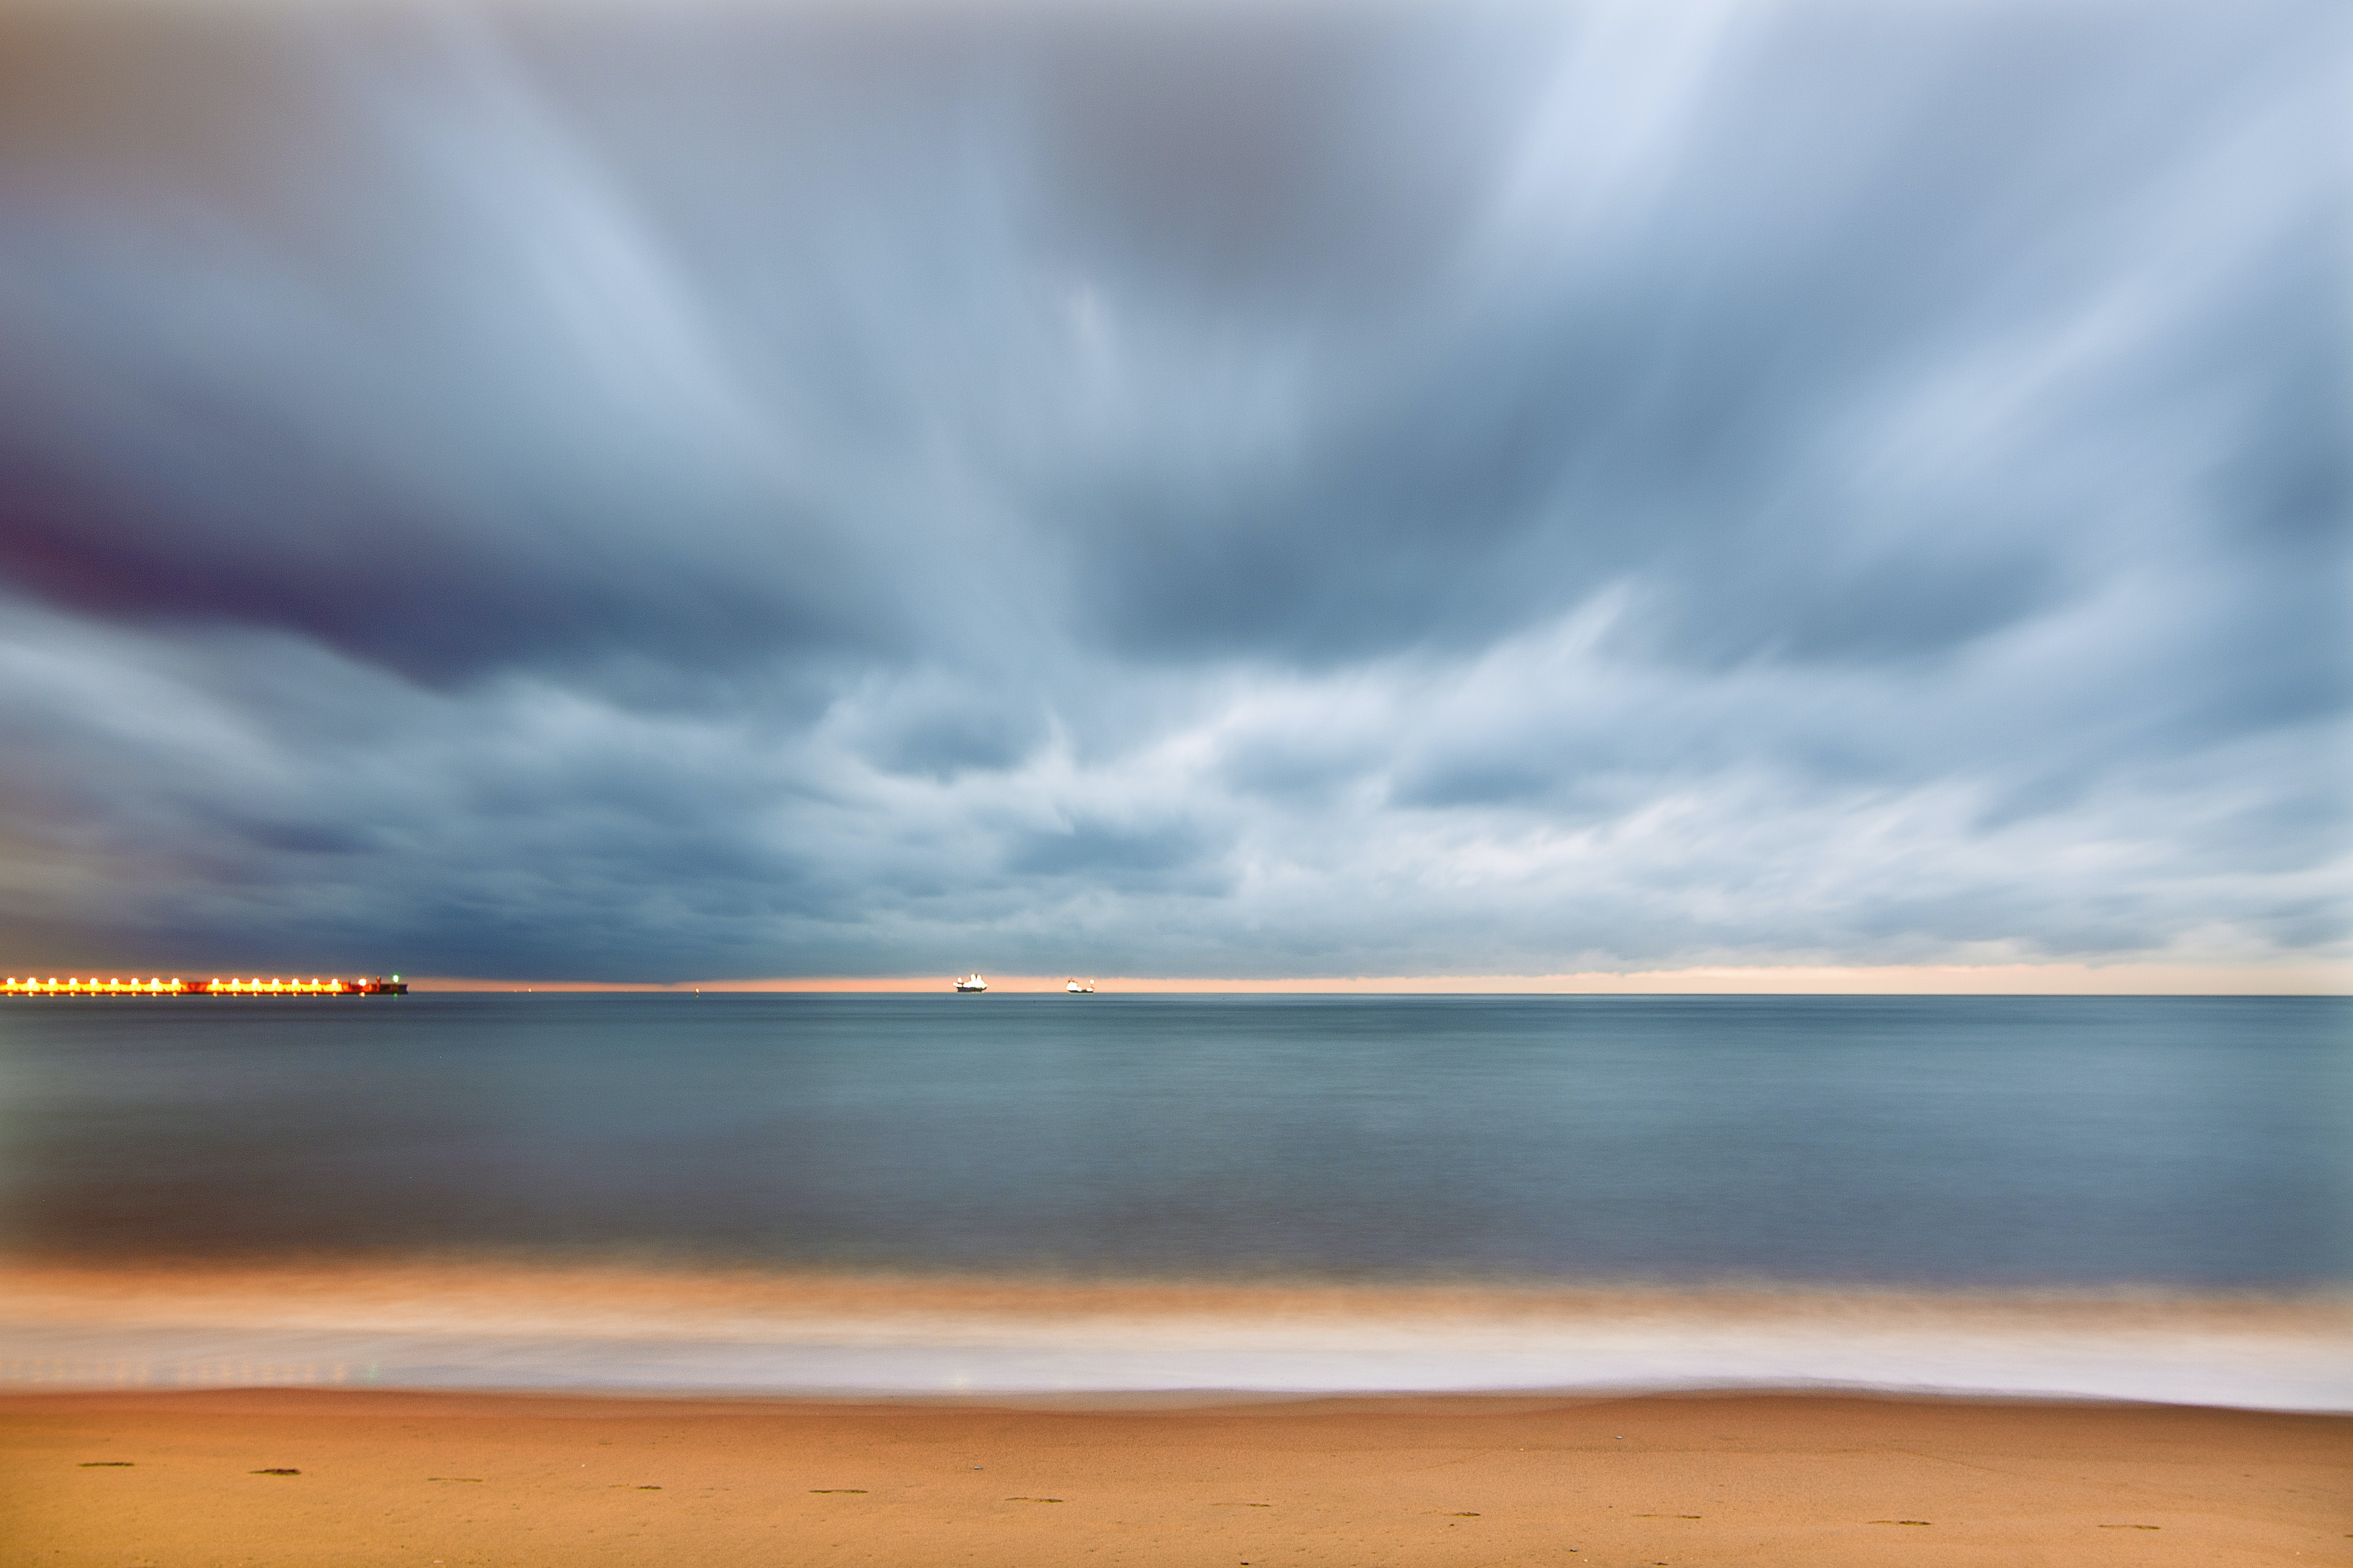 A scenic sunset with cloudy skies casting over Playa de la Misericordia in Malaga